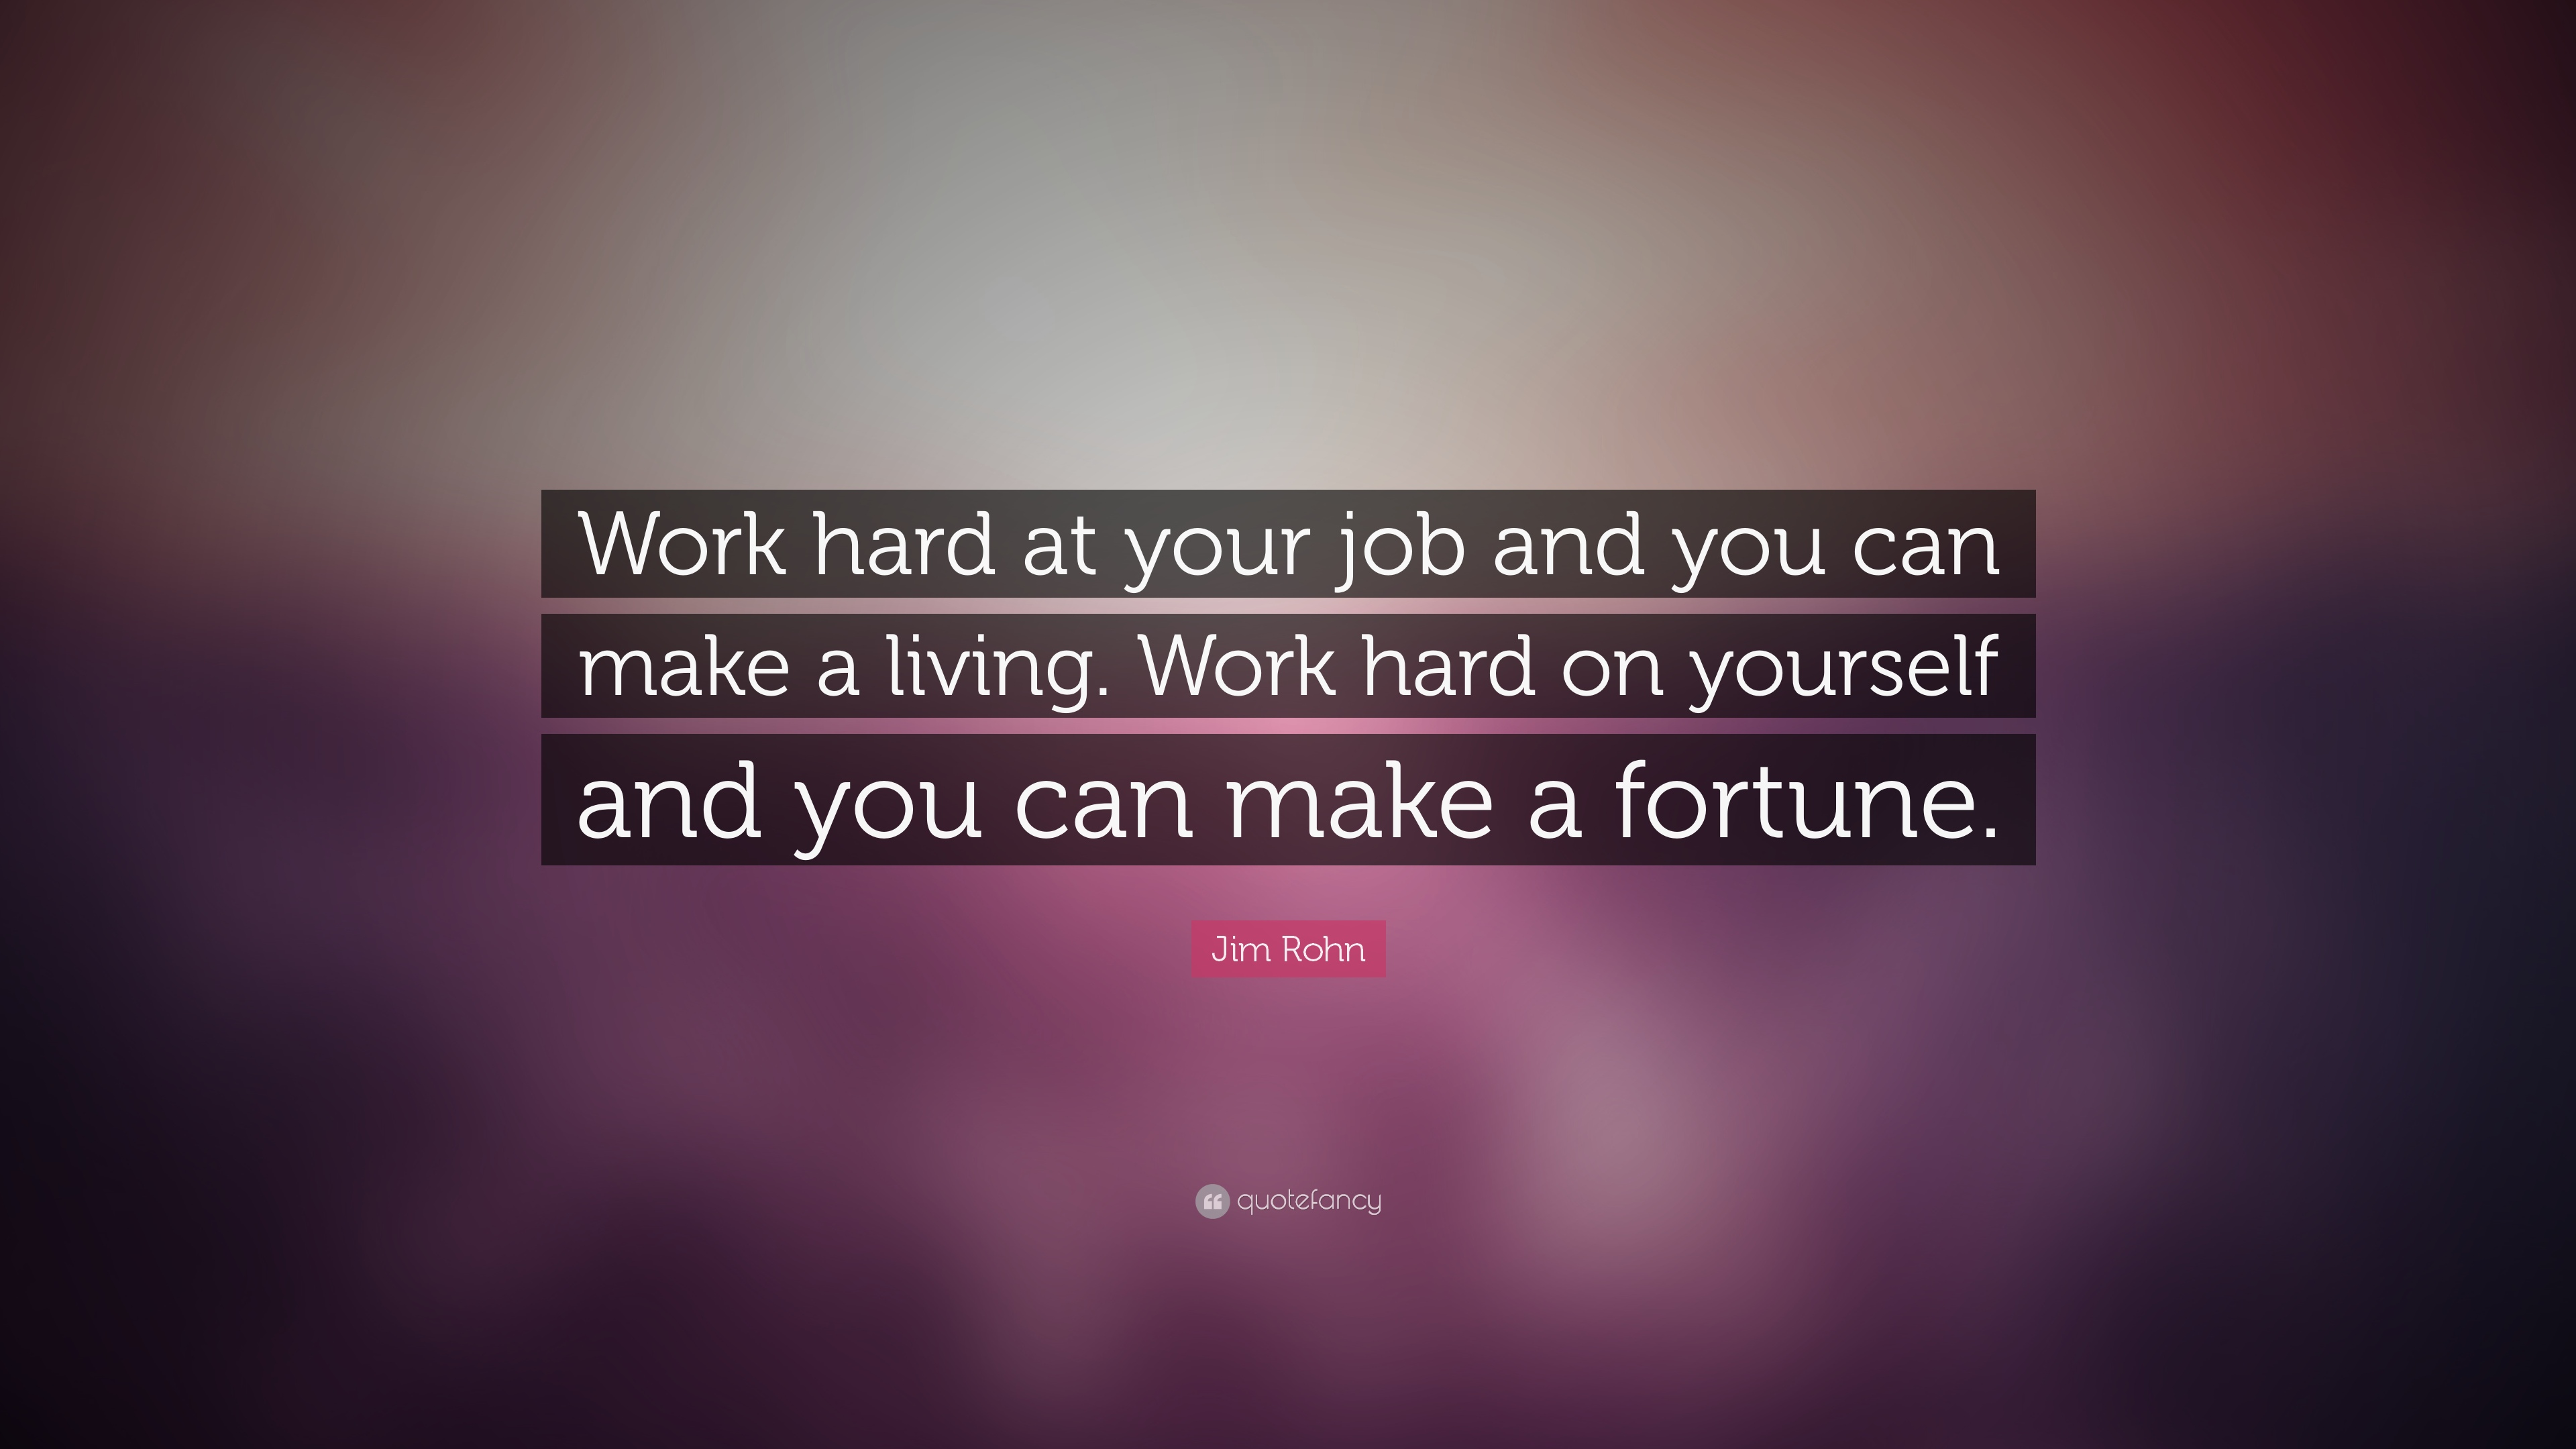 jim rohn quote work hard at your job and you can make a living jim rohn quote work hard at your job and you can make a living